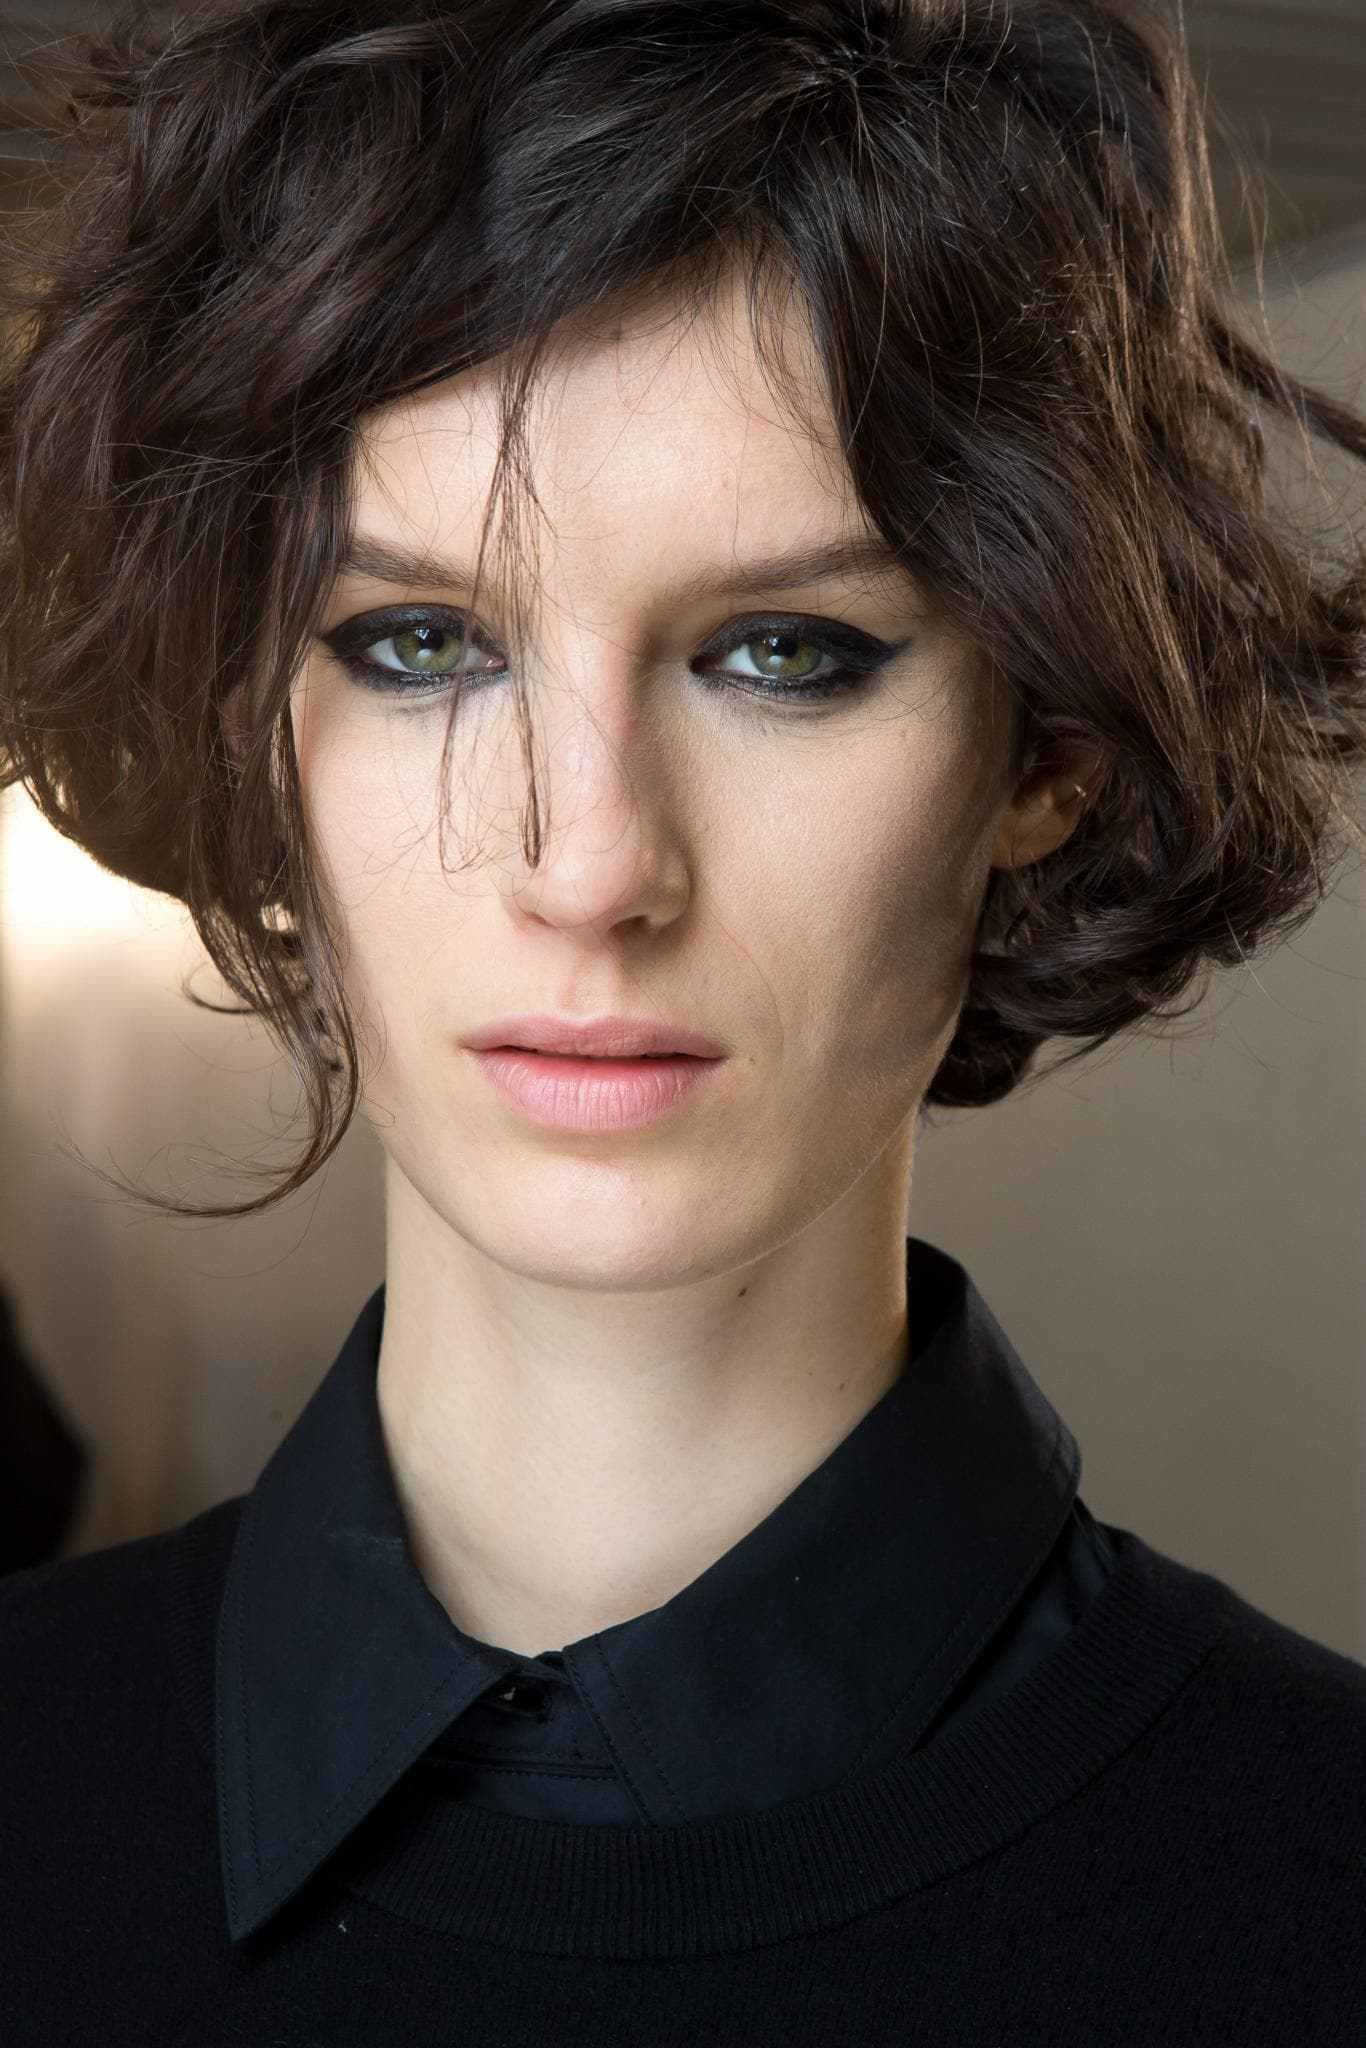 The Best Tousled Short Hair Get The Runway Look On Any Hair Type Pictures